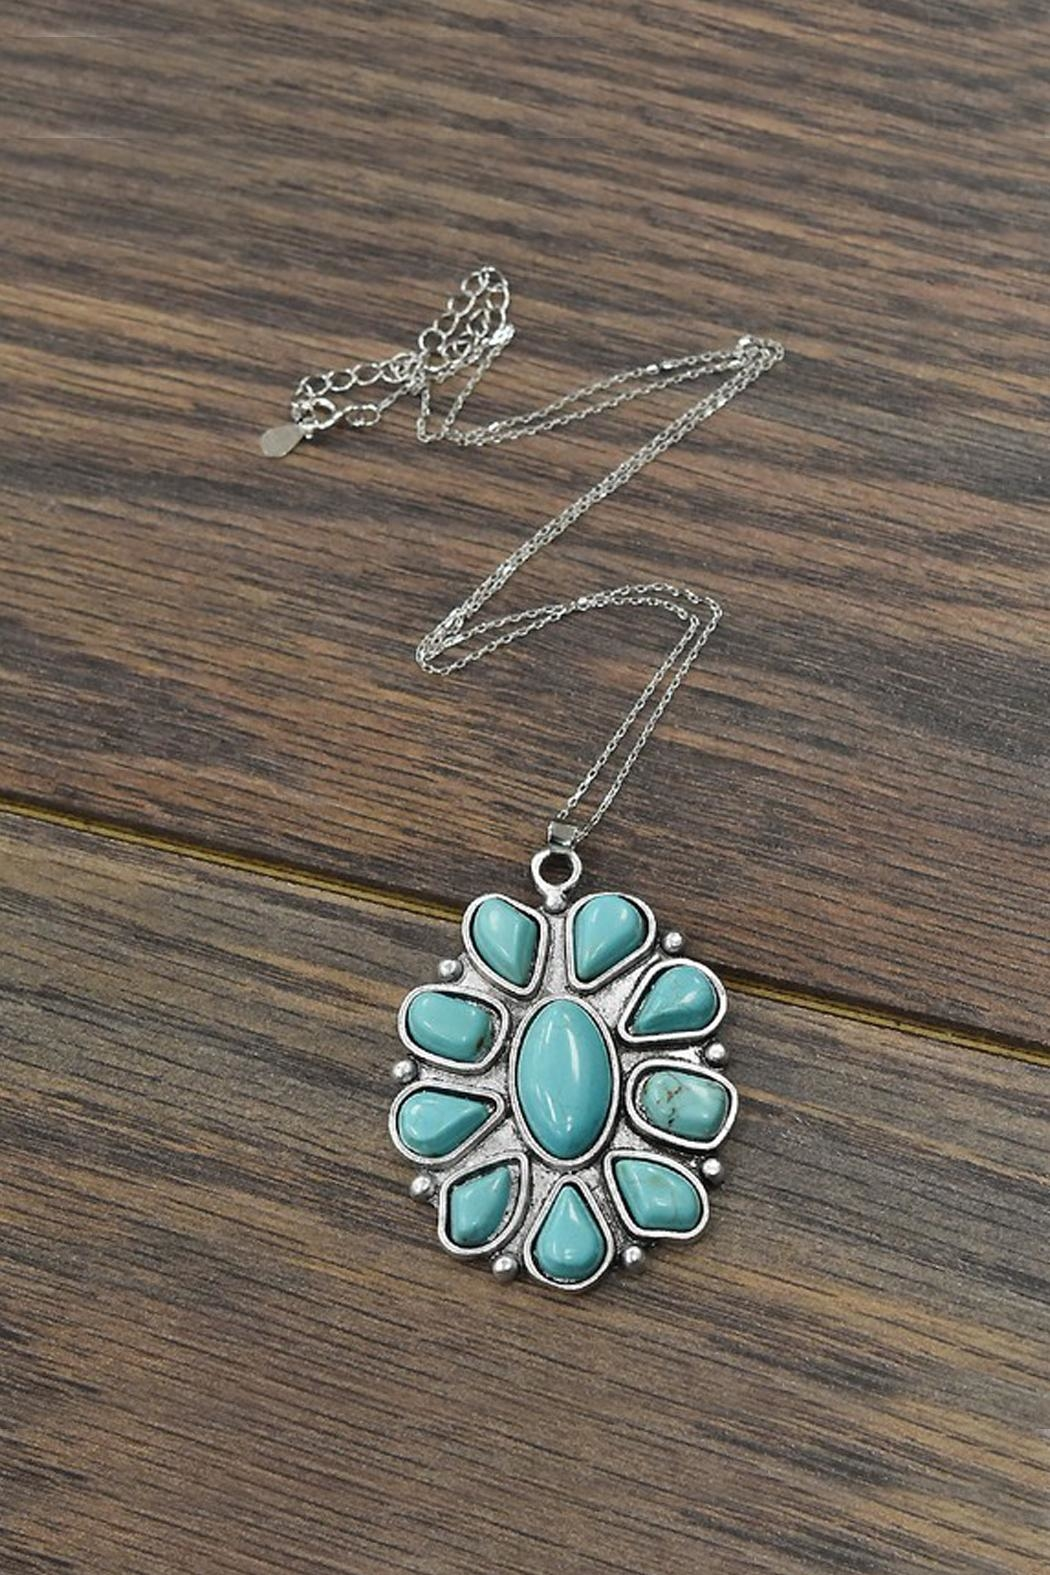 JChronicles Sterling-Silver-Chain With  Natural-Turquoise-Pendant-Necklace - Front Cropped Image